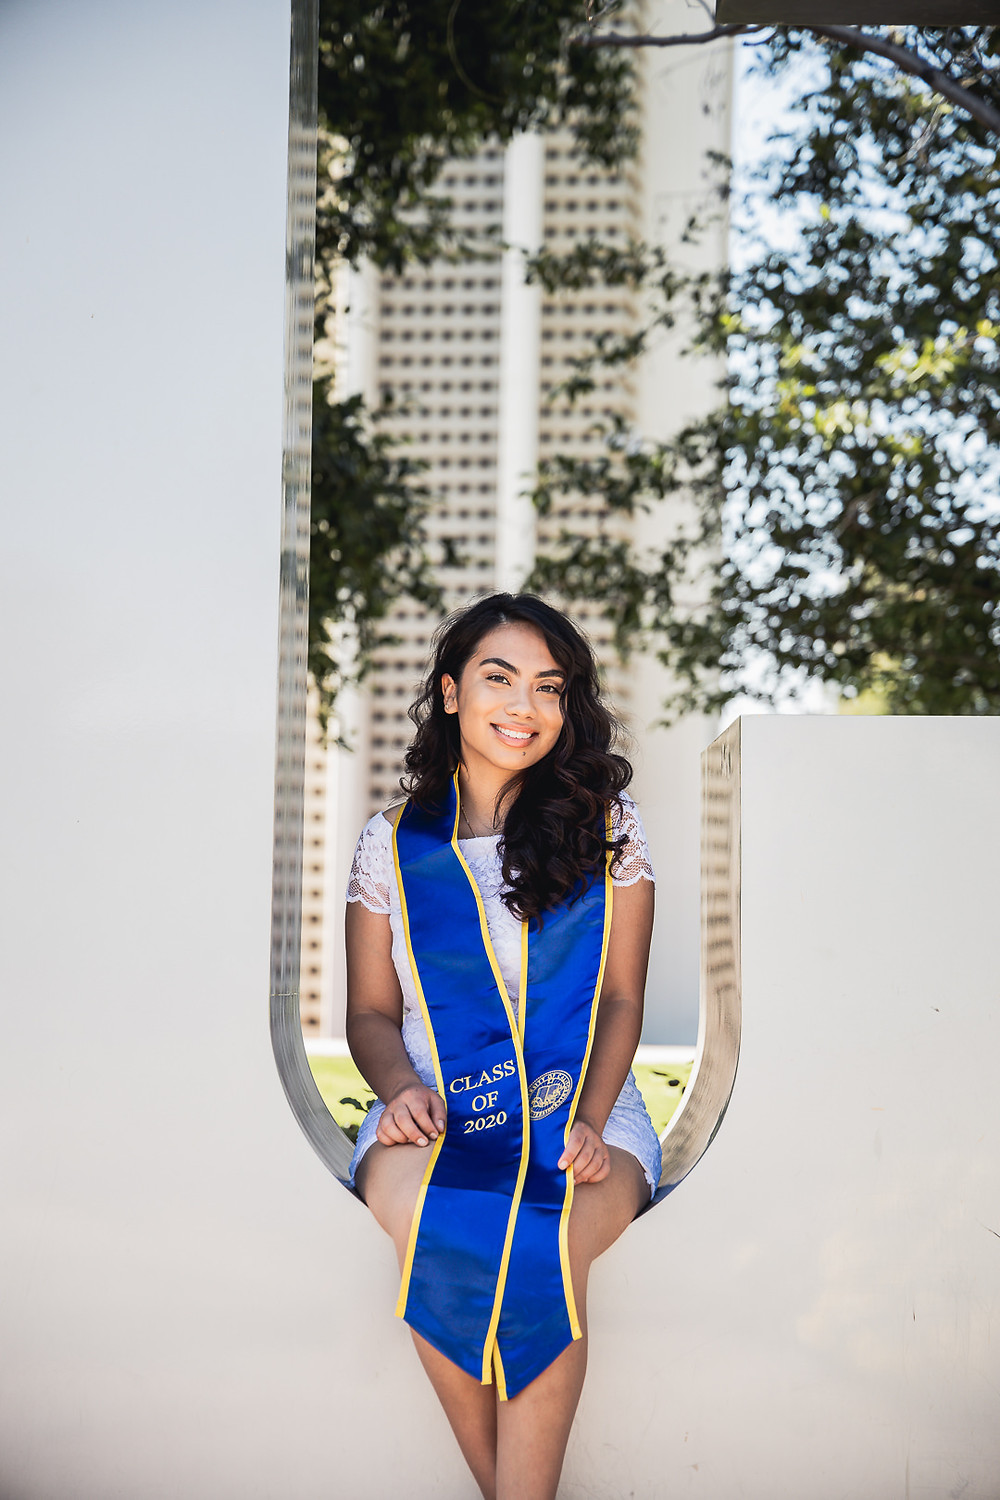 University of California Riverside Graduation Photos | Ashley 12